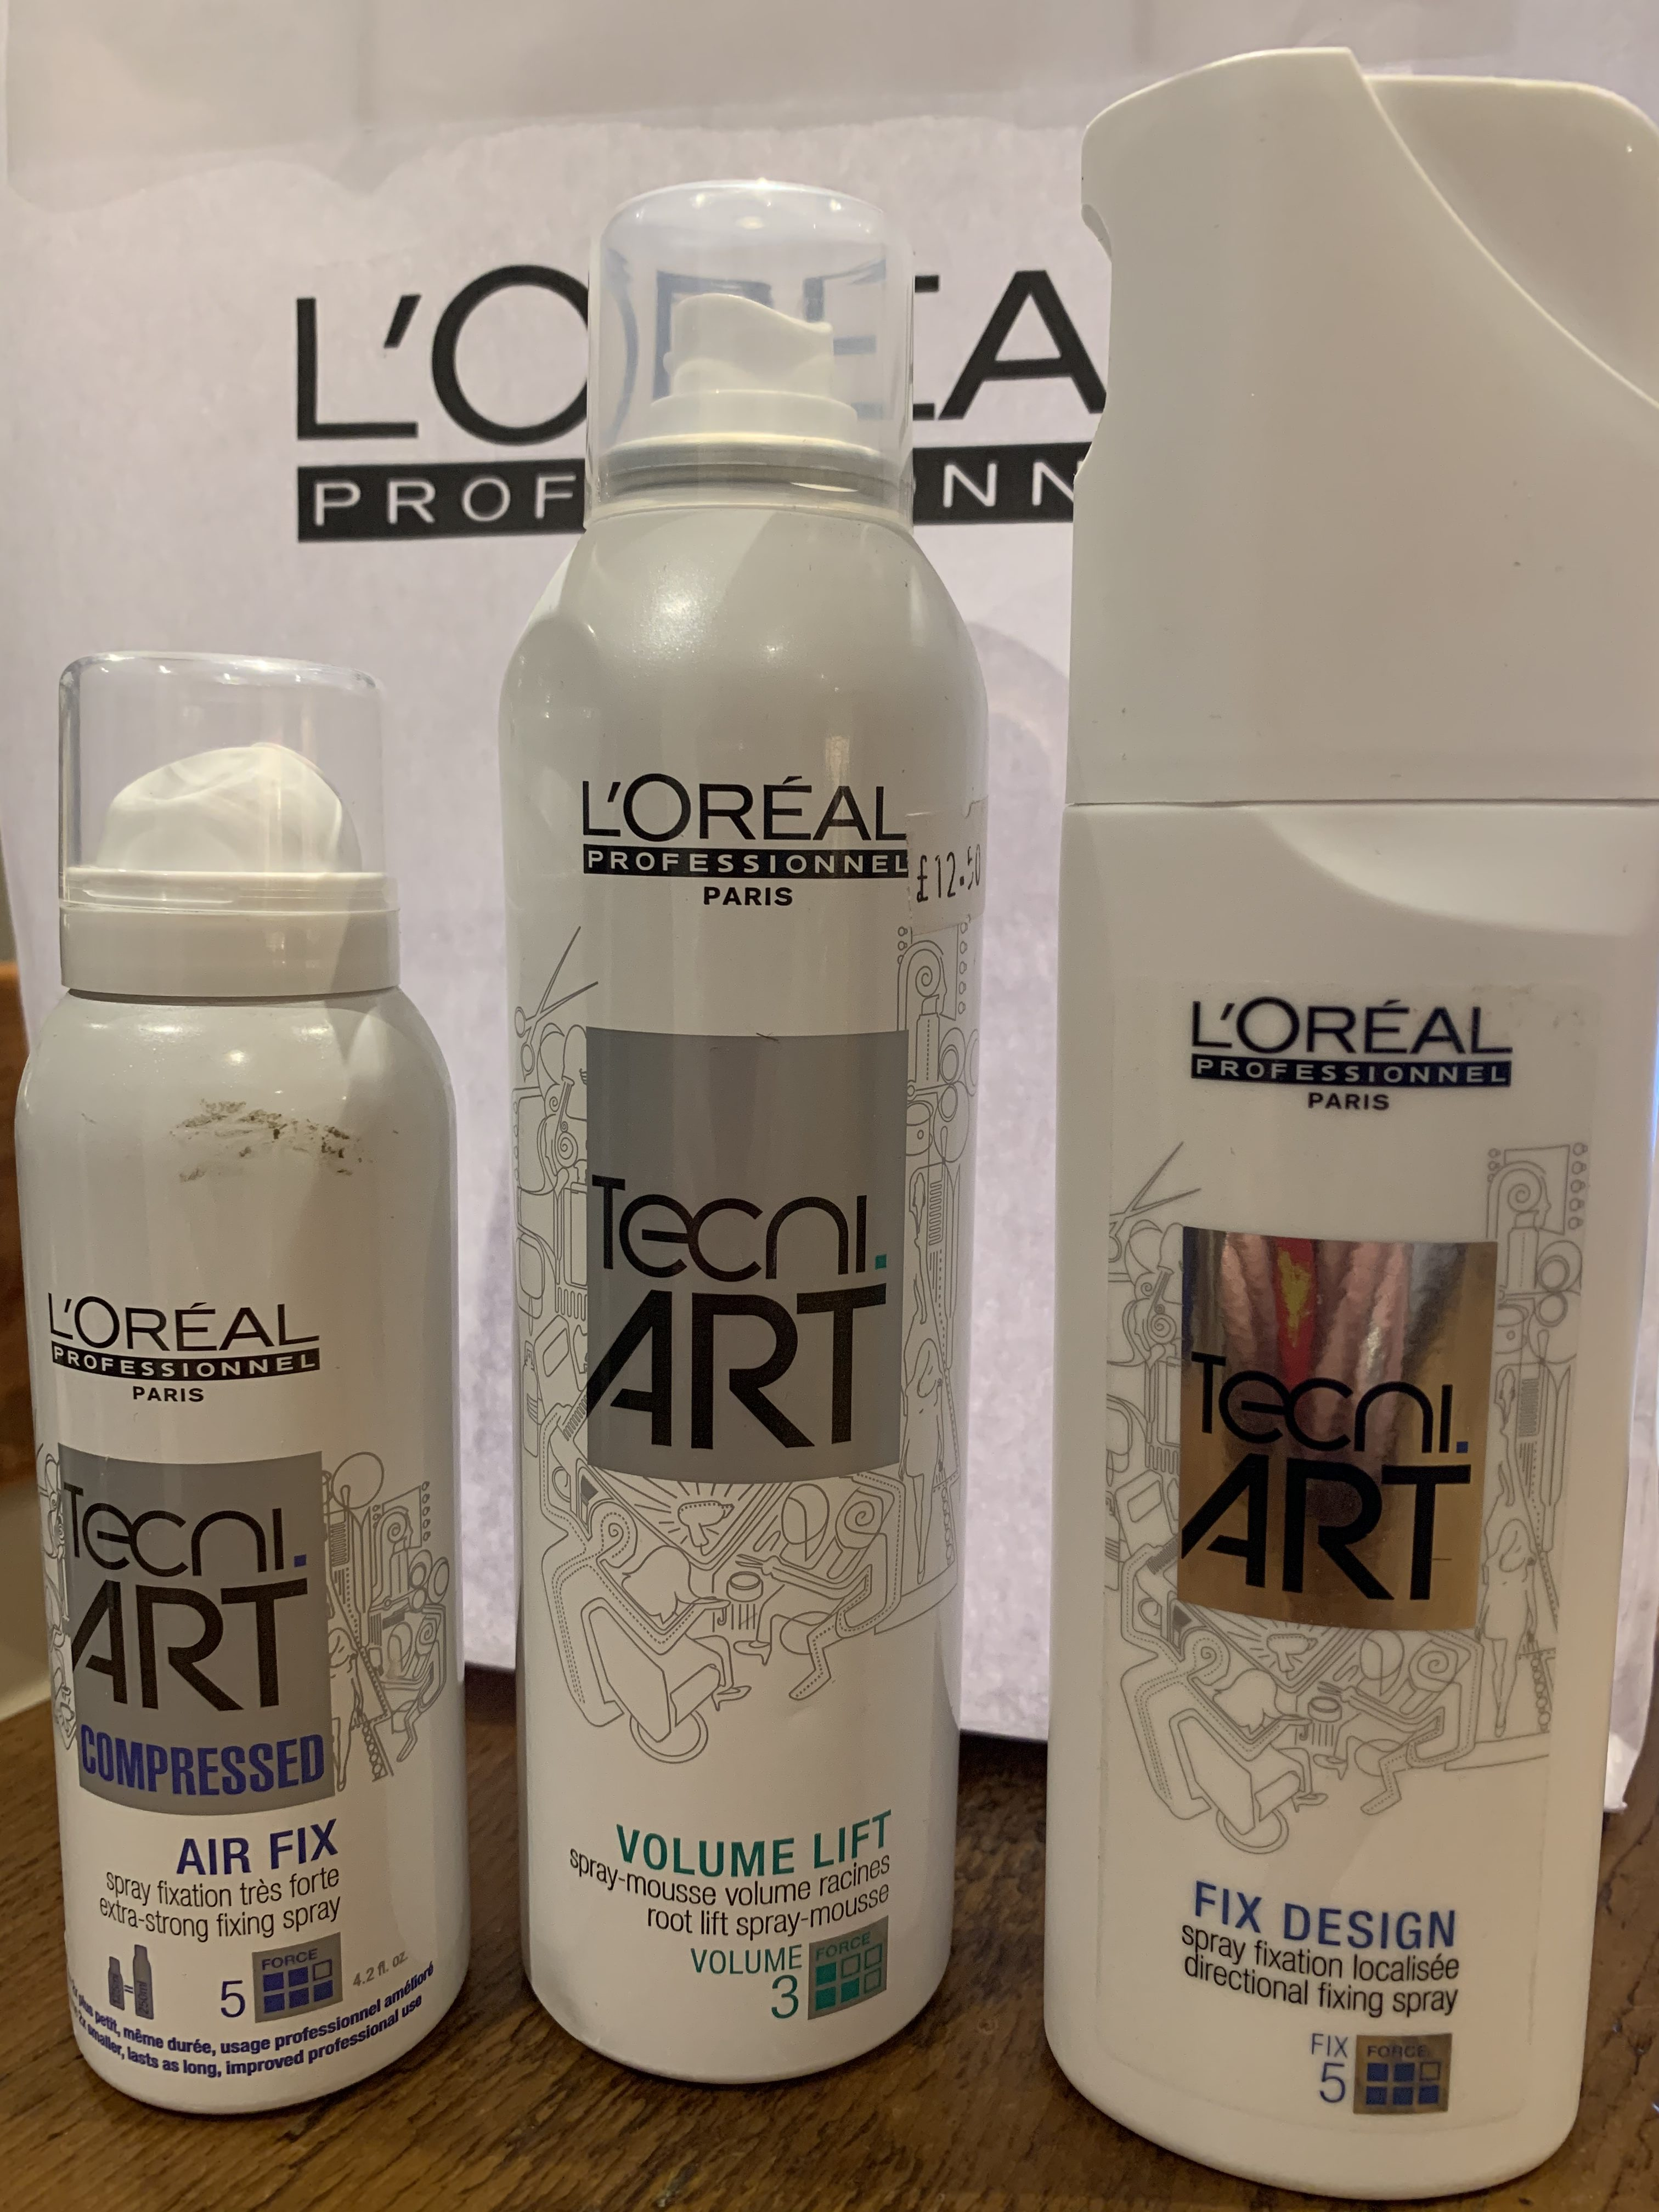 Loreal Hair Products (1 of 3)